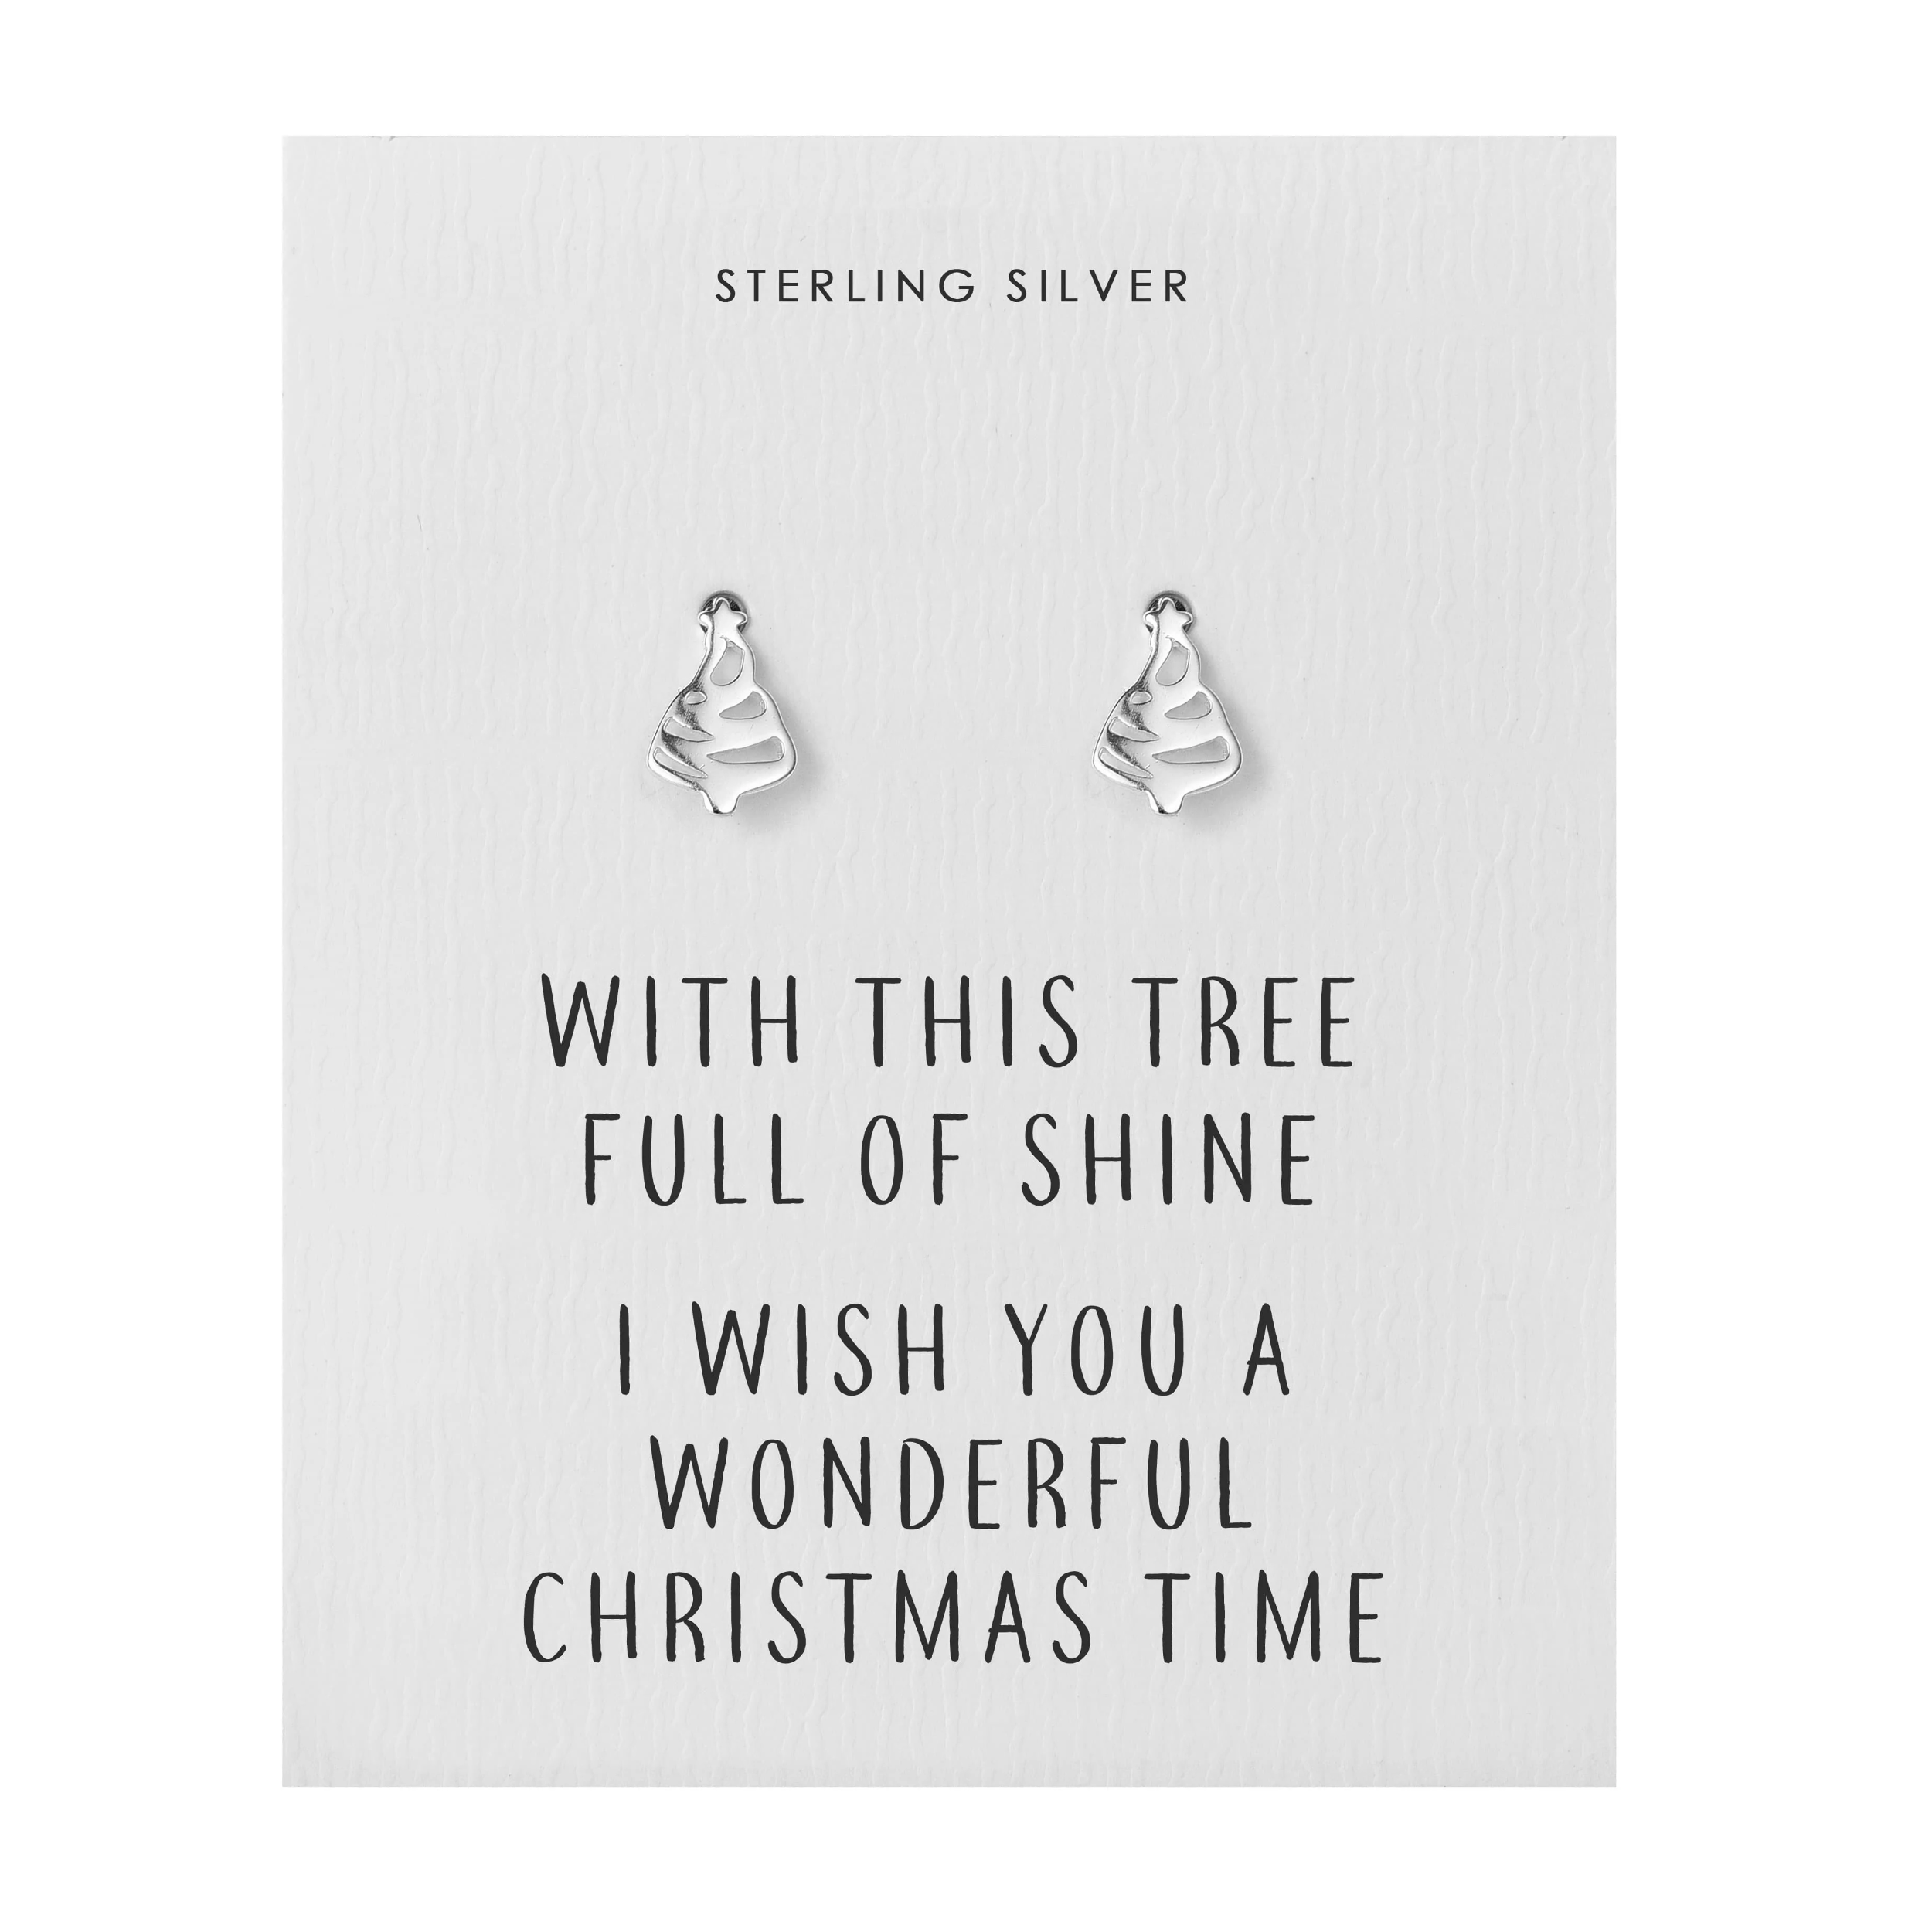 78574112a Sterling Silver Christmas Tree Quote Earrings 5060684825875 | eBay